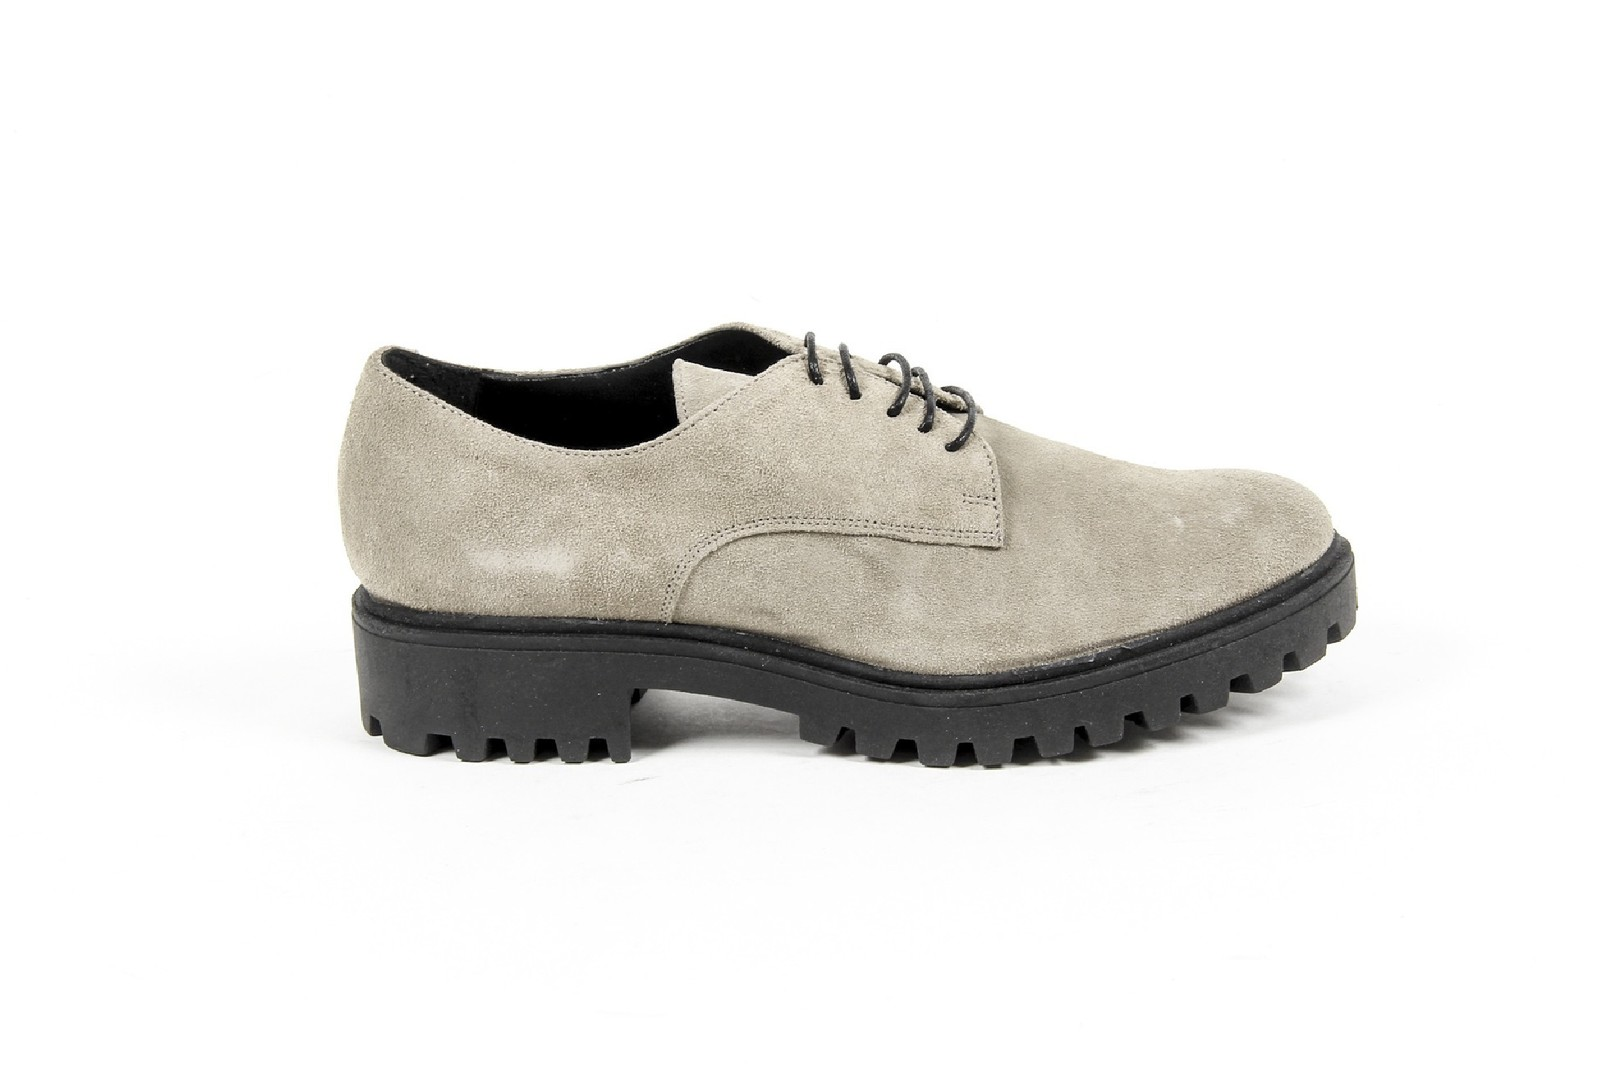 Primary image for V 1969 Italia Womens Lace Up Shoe C01 CAMOSCIO TAUPE